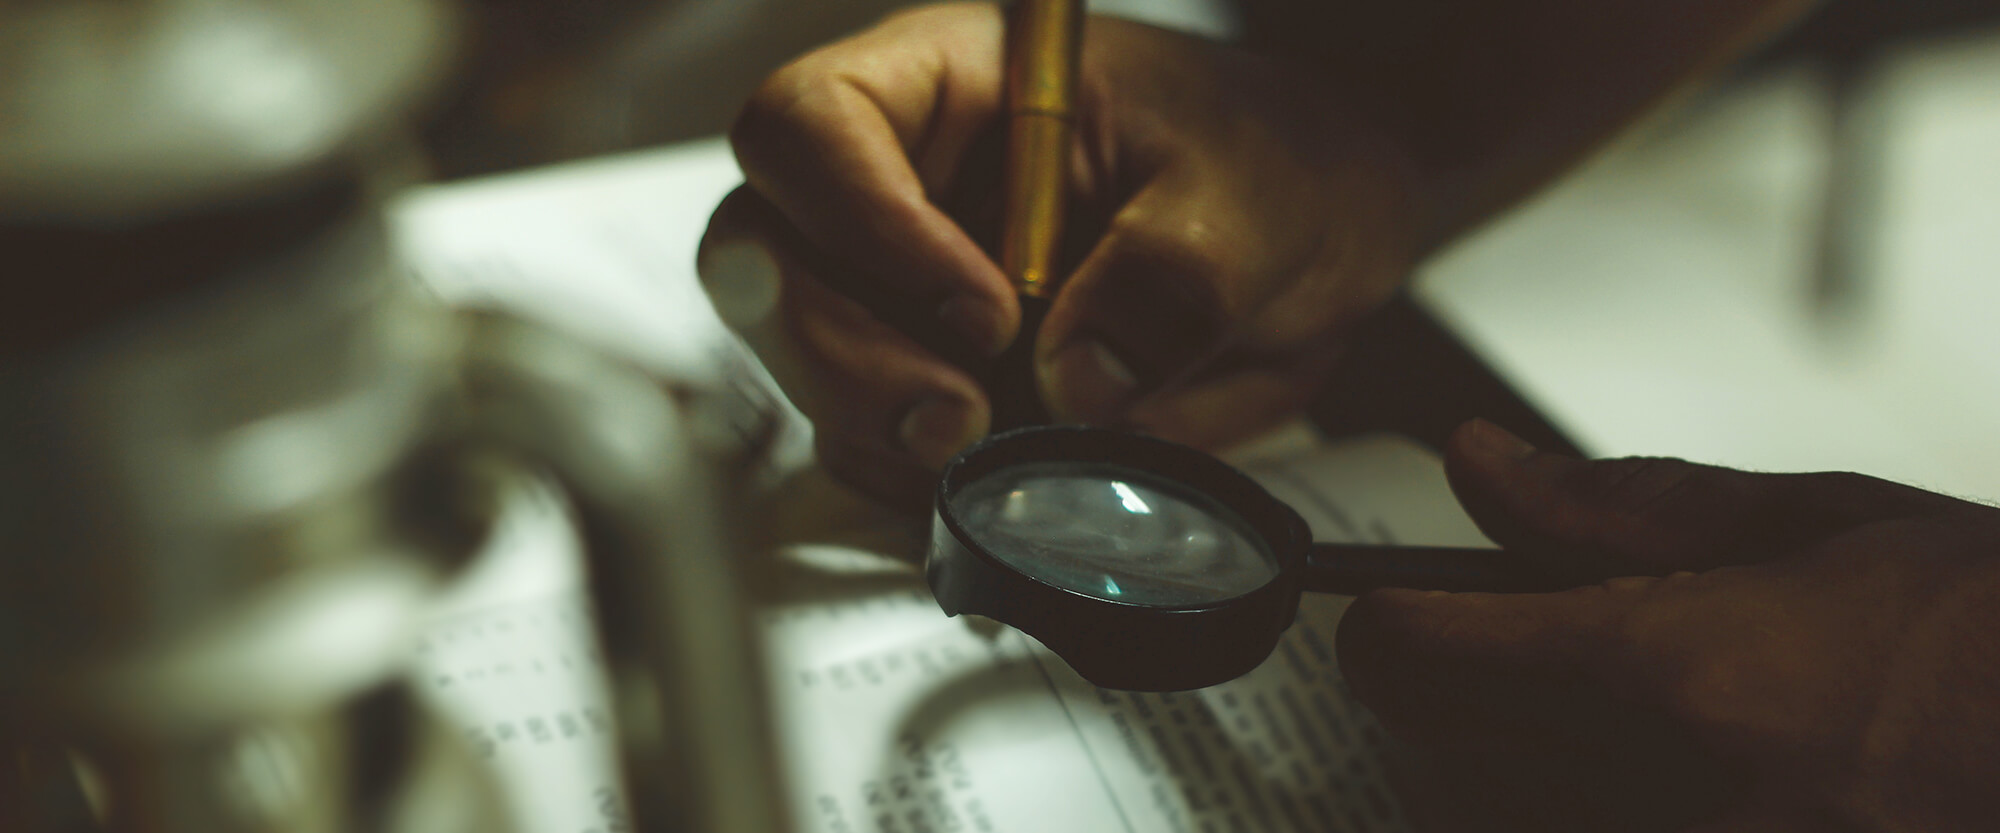 Magnifying glass on bible